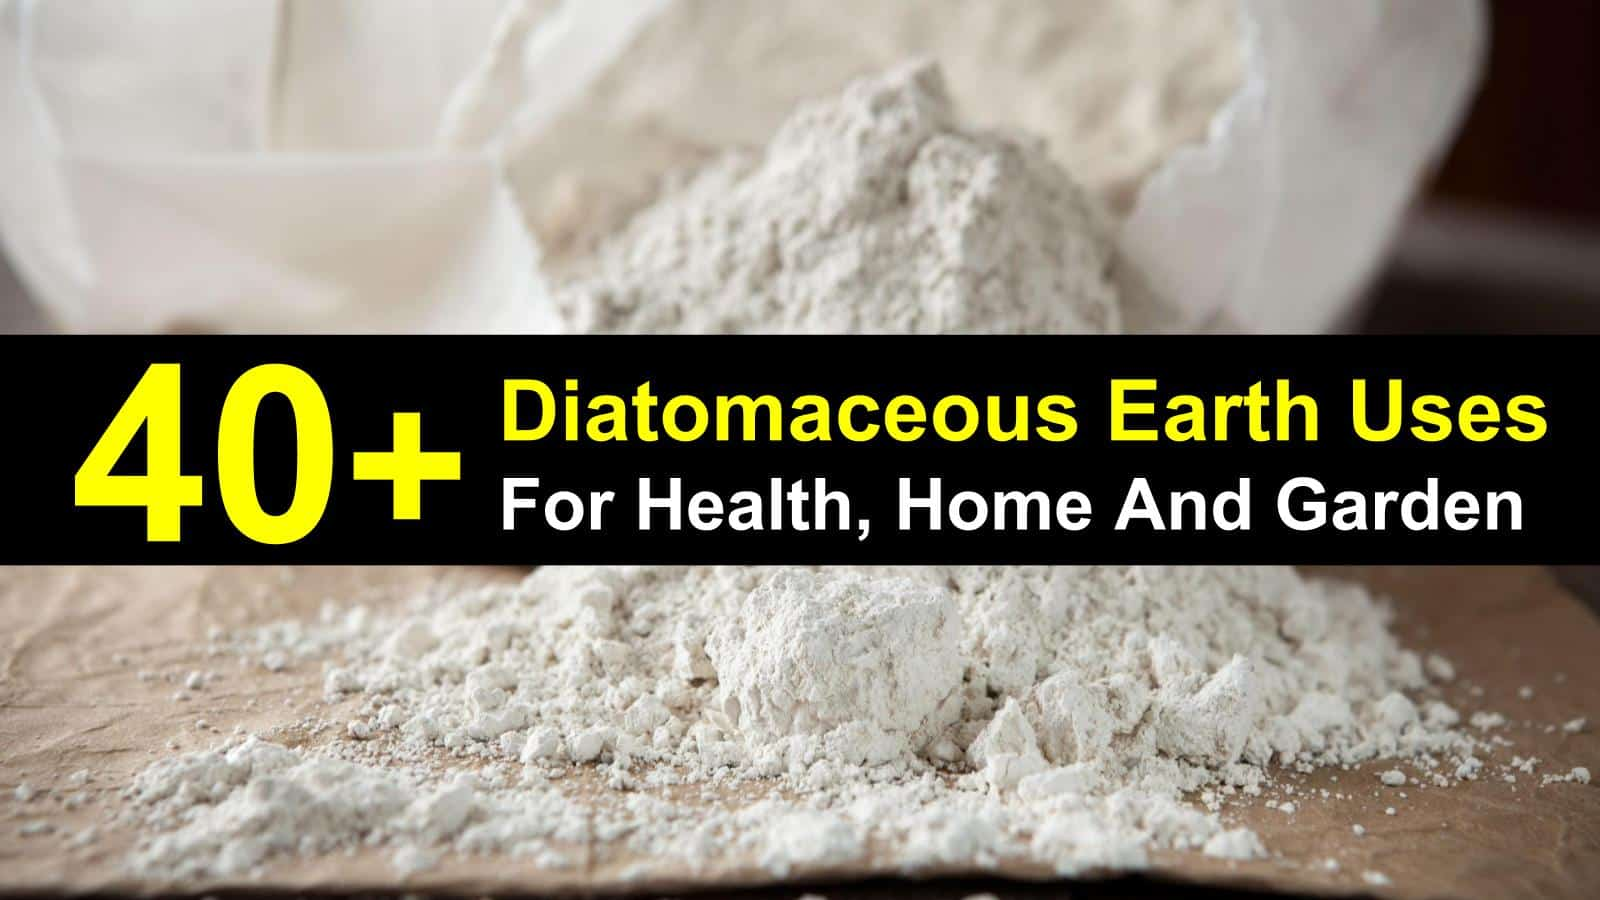 diatomaceous earth uses for health home and garden titlimg